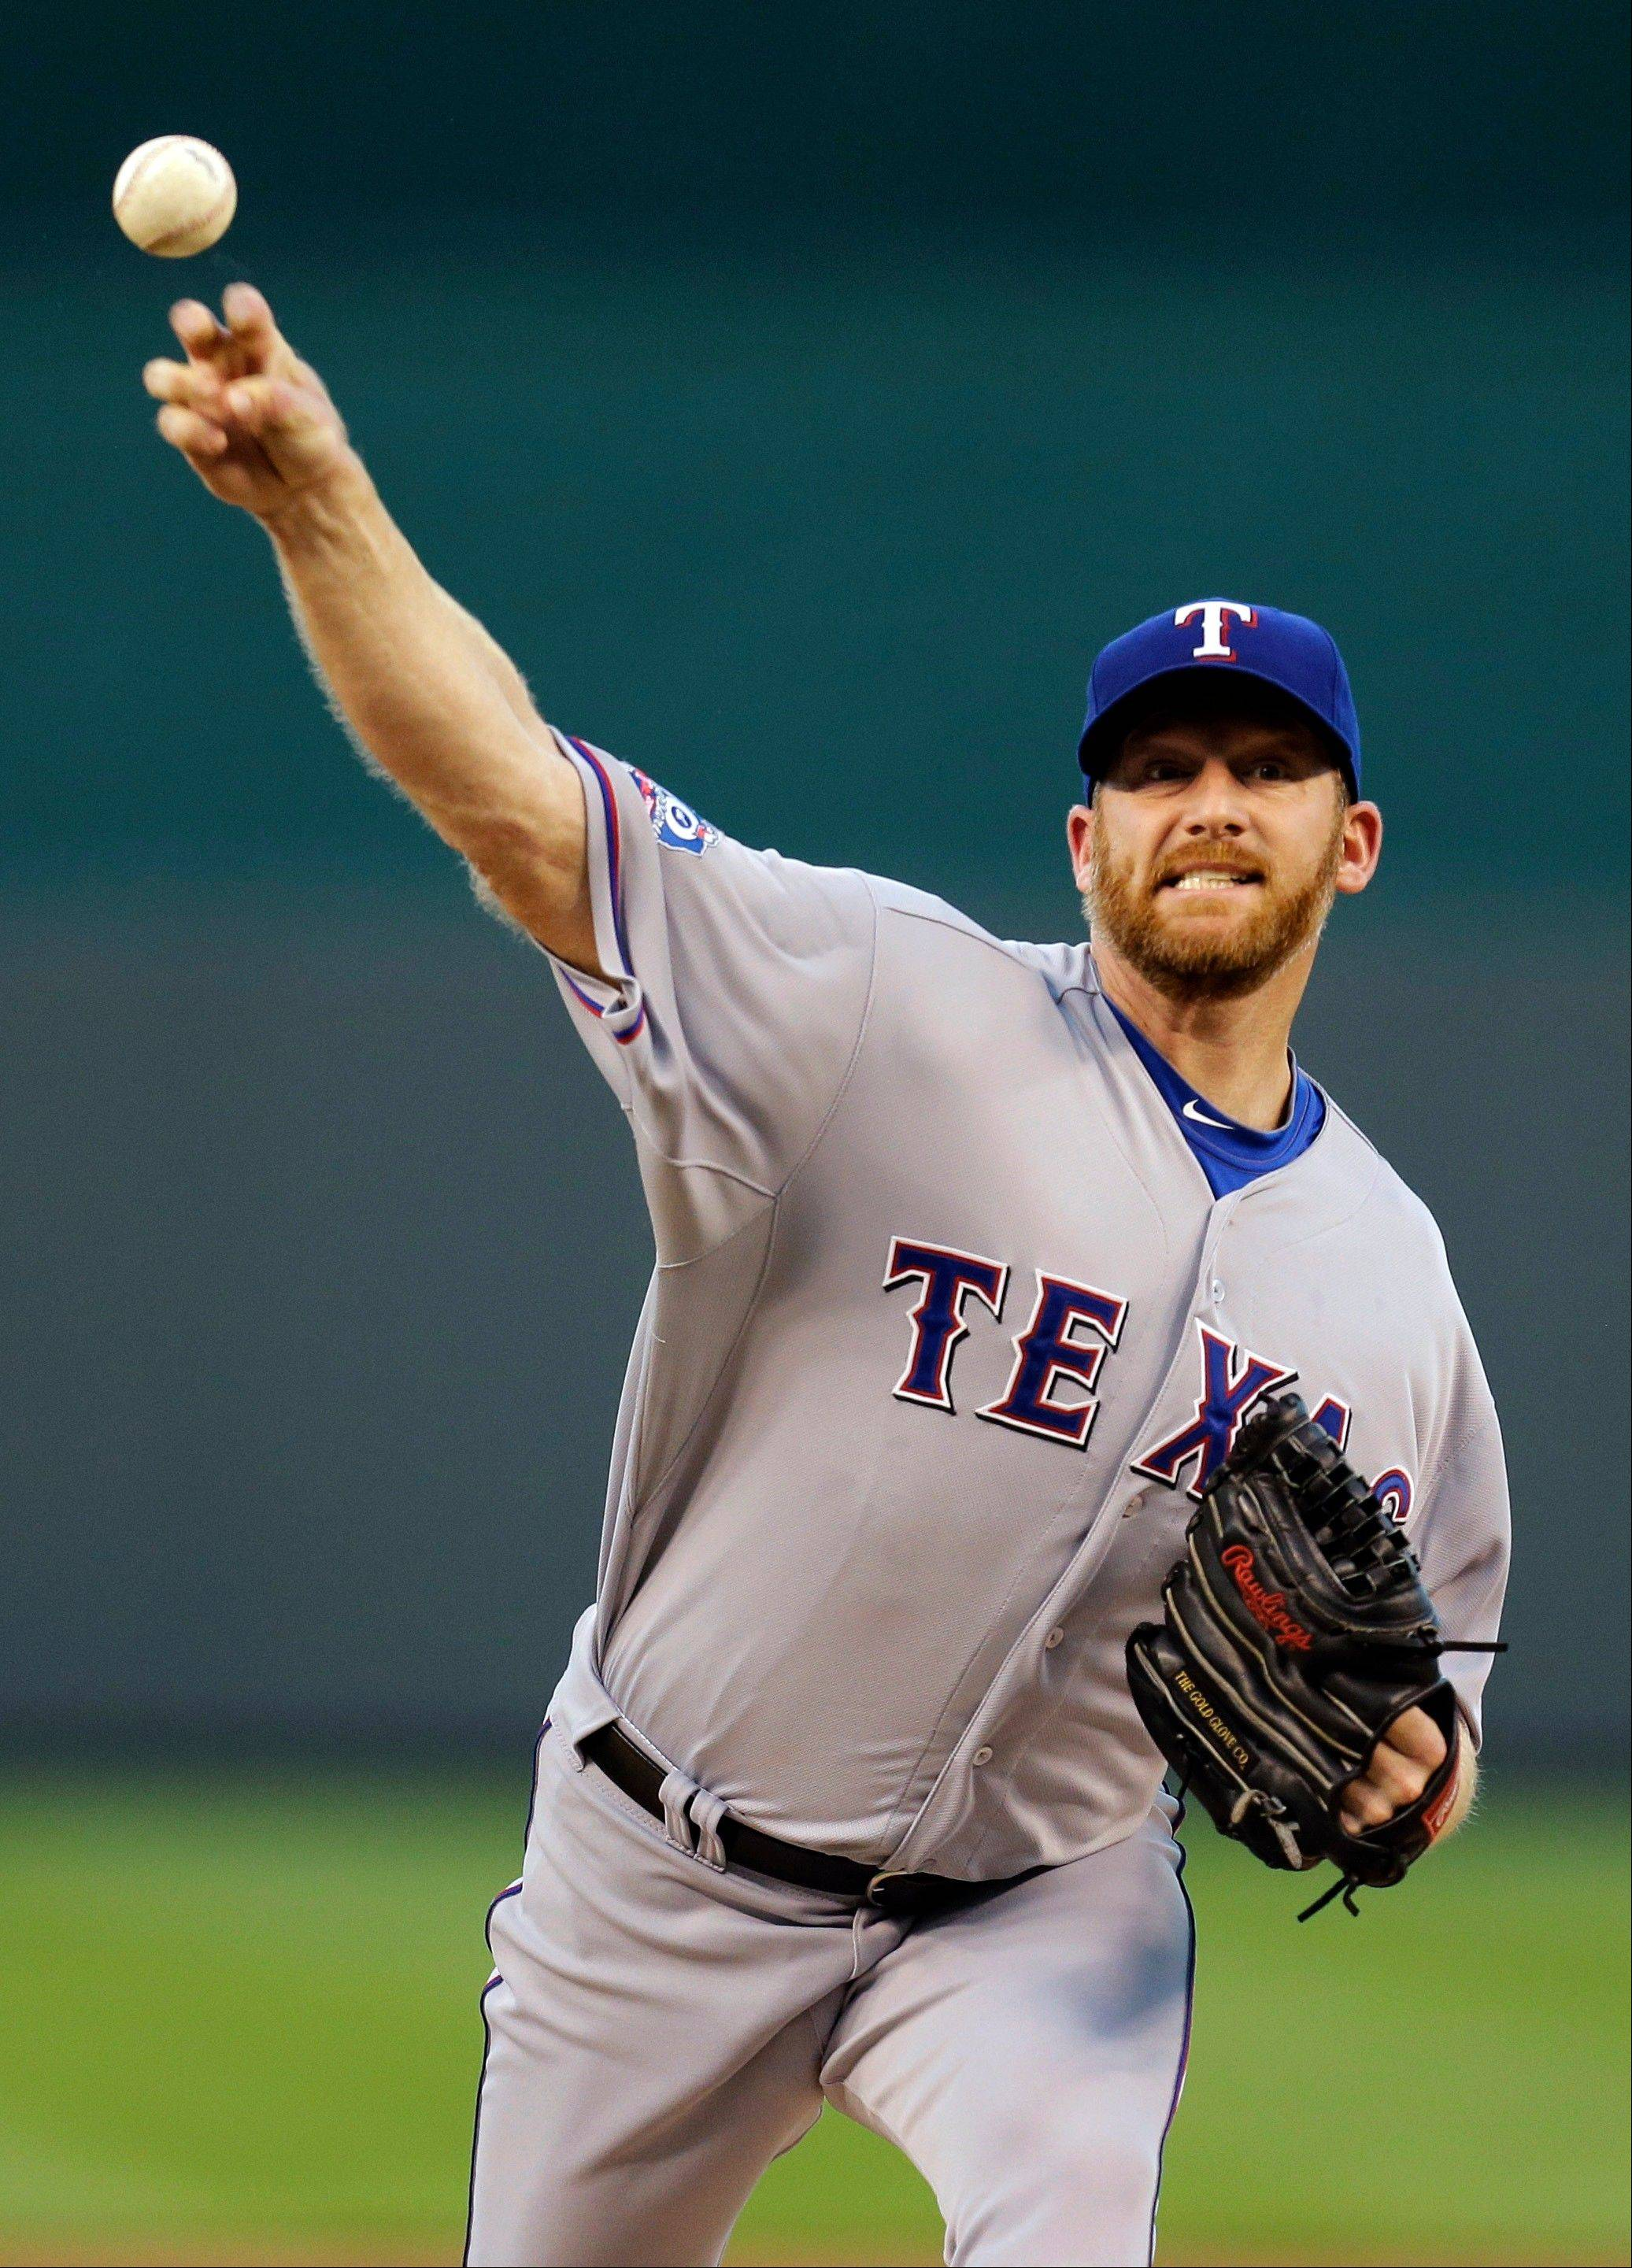 Texas Rangers starting pitcher Ryan Dempster struck out eight Wednesday in Kansas City to win his fourth consecutive game.